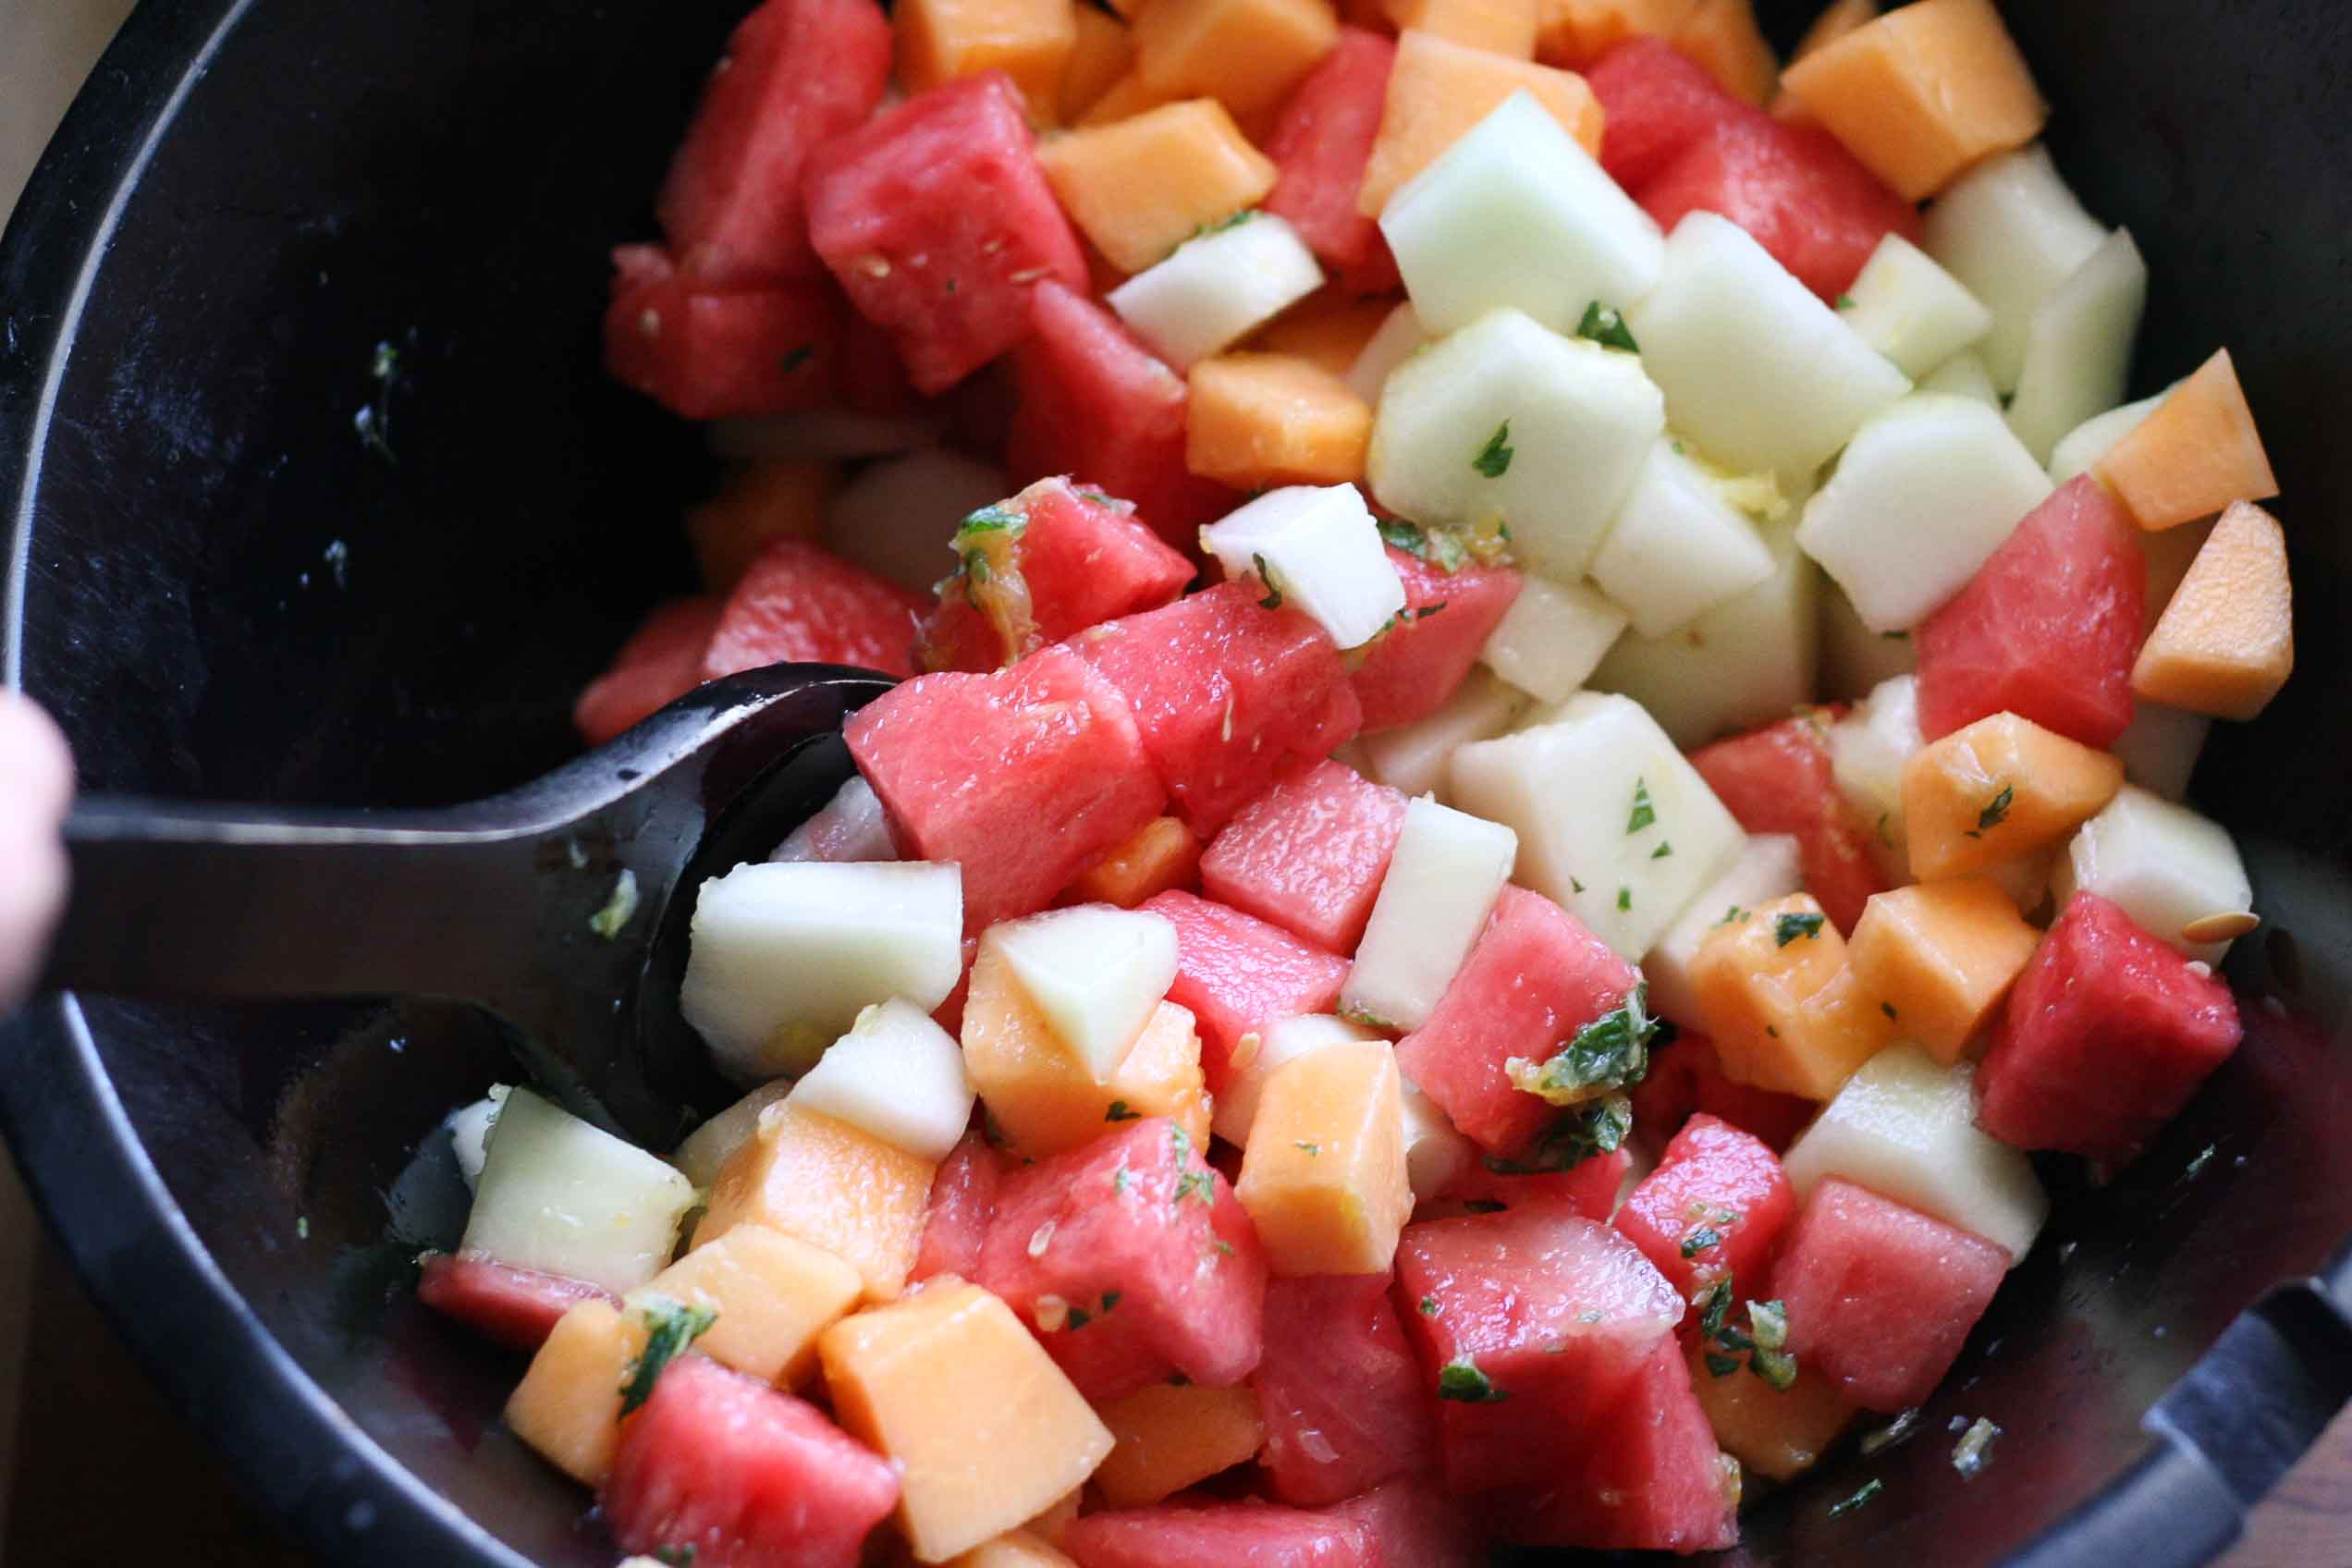 Tasty Kitchen Blog: Melon Salad. Guest post and recipe submitted by Natalie Perry of Perry's Plate.